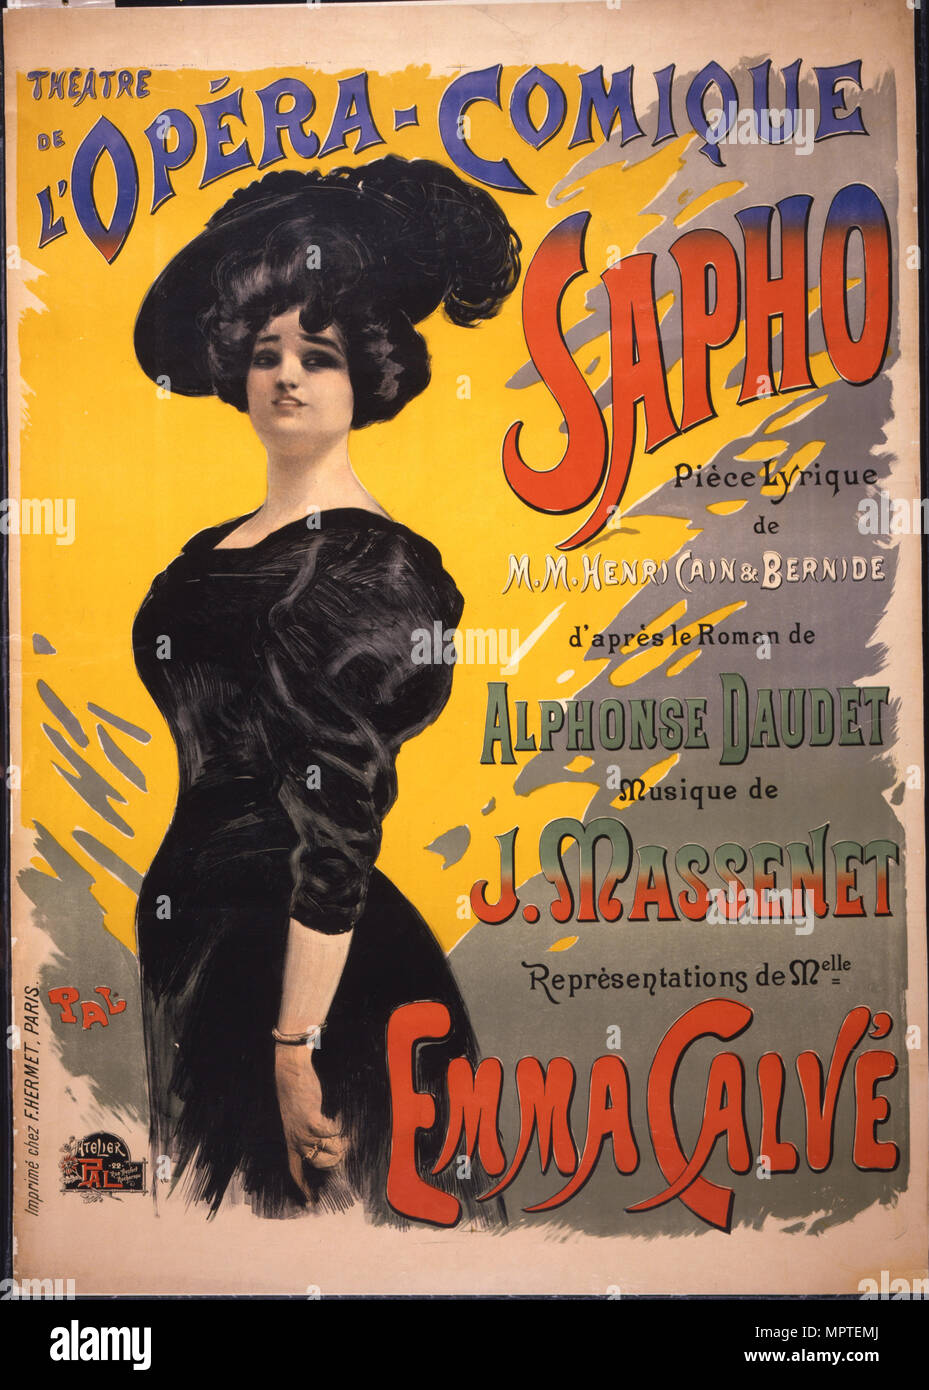 Emma Calvé as Fanny Legrand. Poster for the premiere of opéra-comique Sapho by Massenet performed on - Stock Image